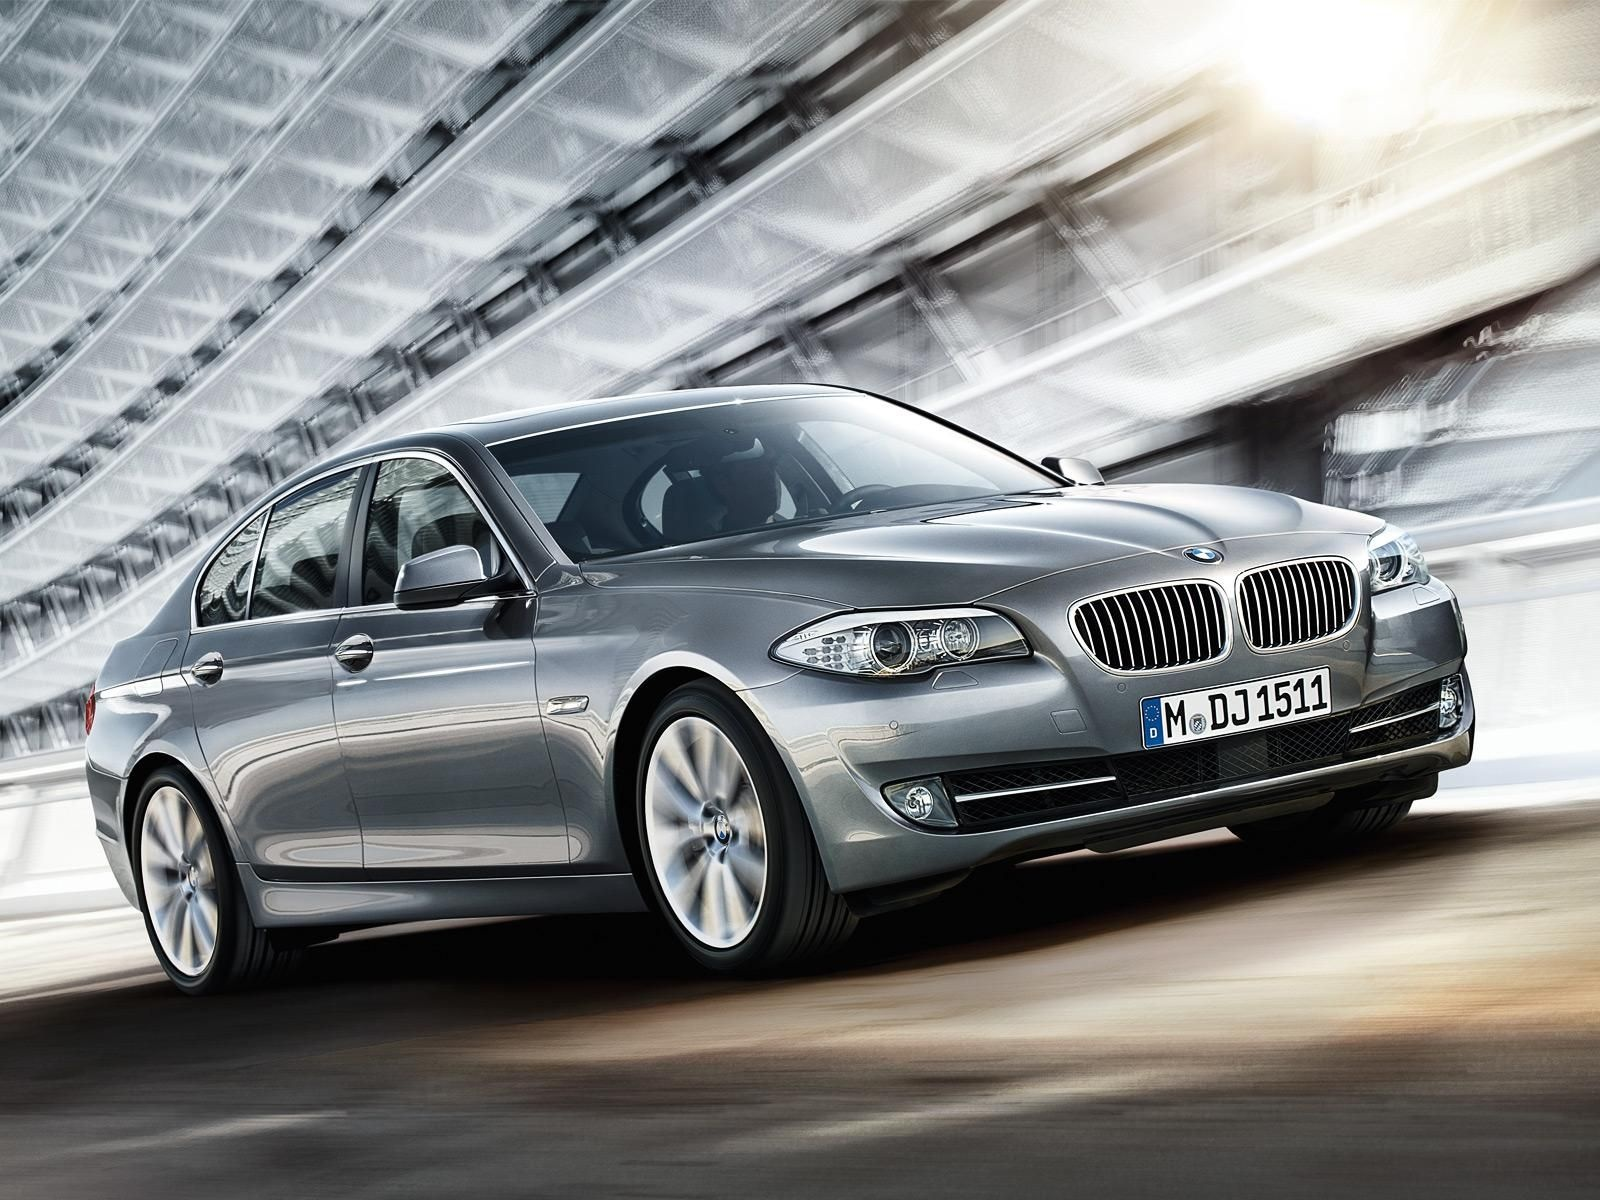 beautiful bmw 5 series 2011 luxury car wallpaper